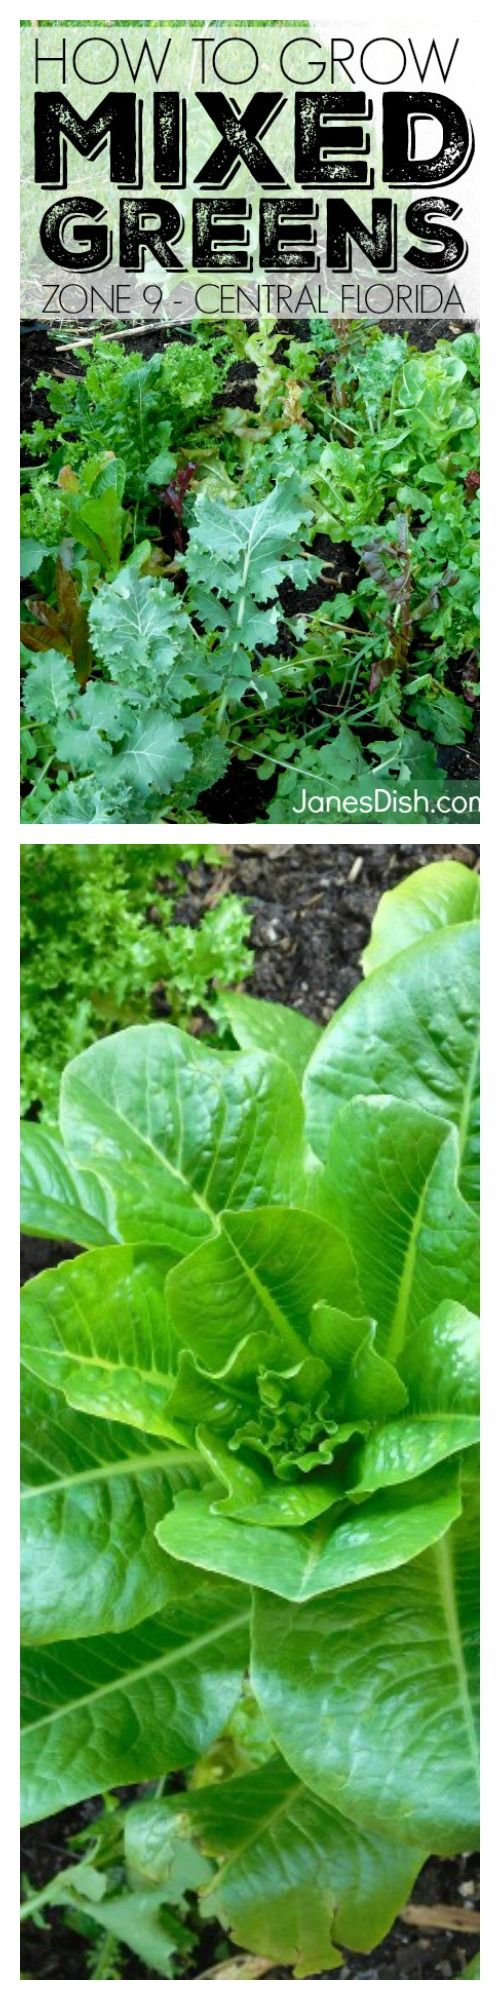 How to grow mixed greens central florida zone 9 huerto urbano huerto y jard n for Jardin urbano shop telefono